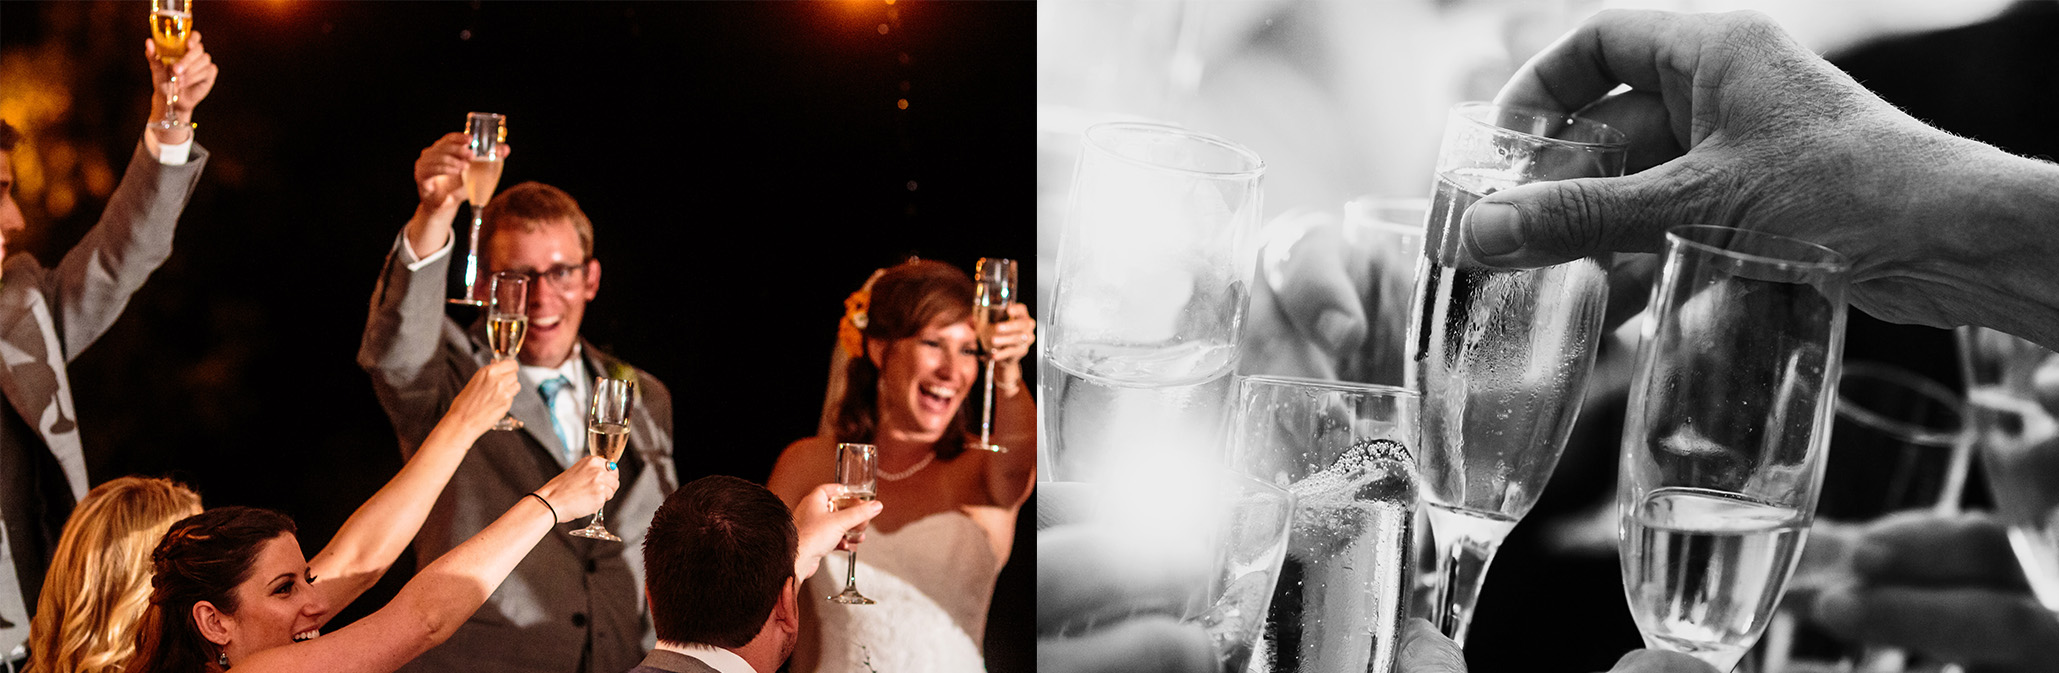 Same toast, with one photographer on the bride + groom (left) while a second photographer is watching the guests (right).